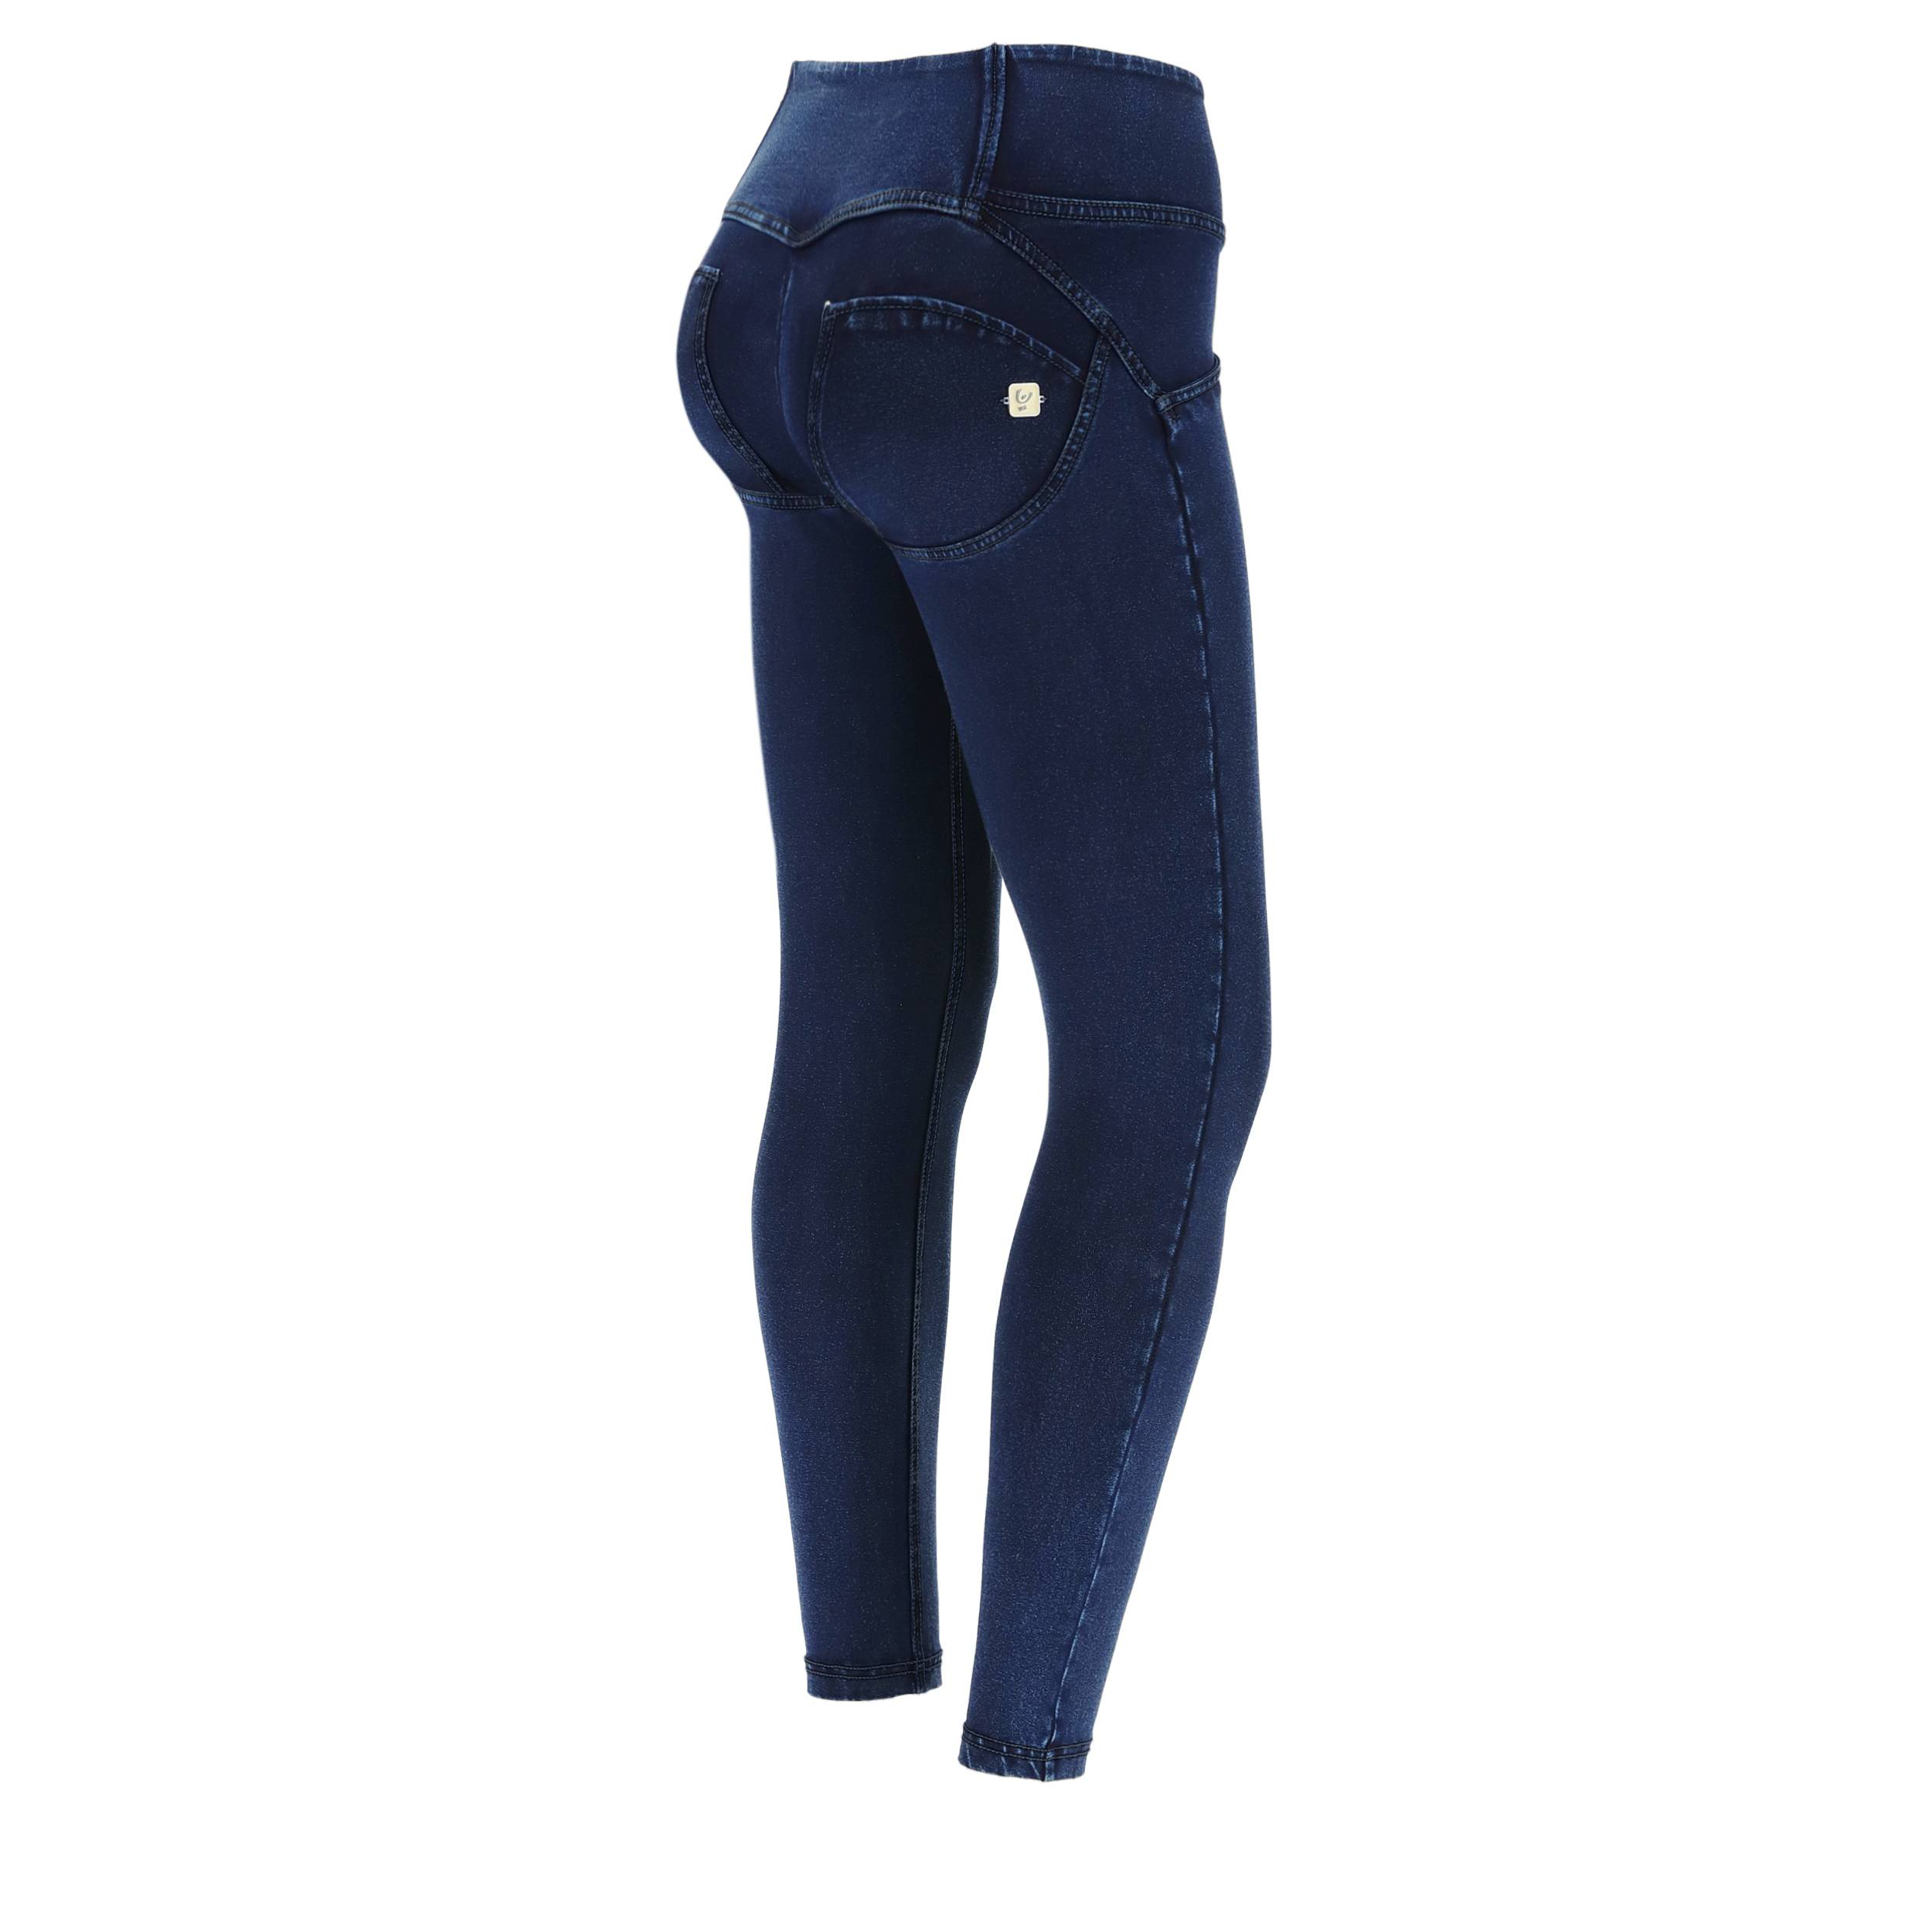 Freddy Jeggings push up WR.UP® 7/8 superskinny vita media Jeans Scuro-Cuciture In Tono